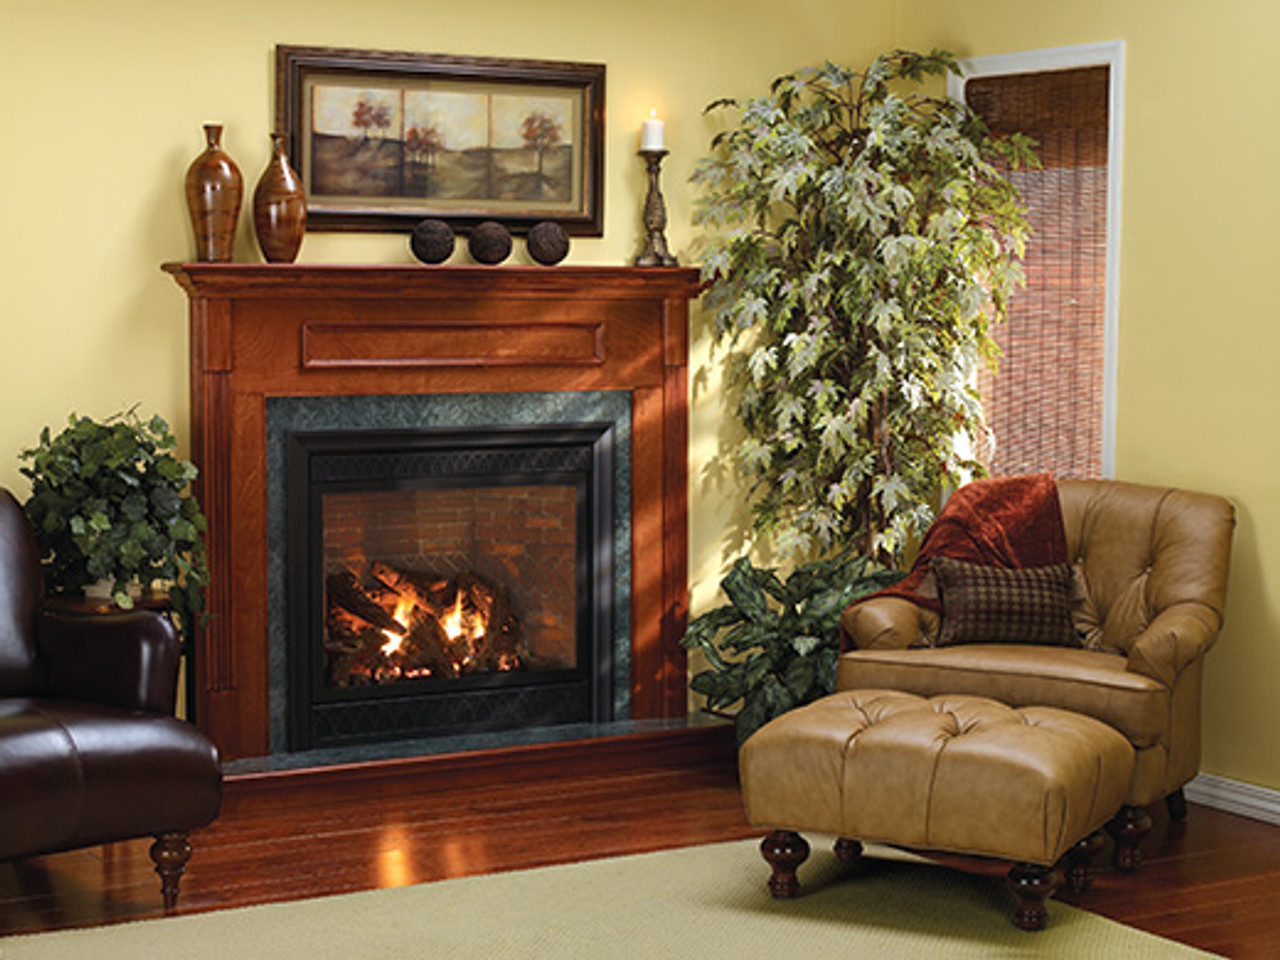 "Empire Tahoe Direct-Vent Fireplace Luxury 42"" - Multi-Function Control (includes Variable Remote to control flame Accent Light, and Blower)"